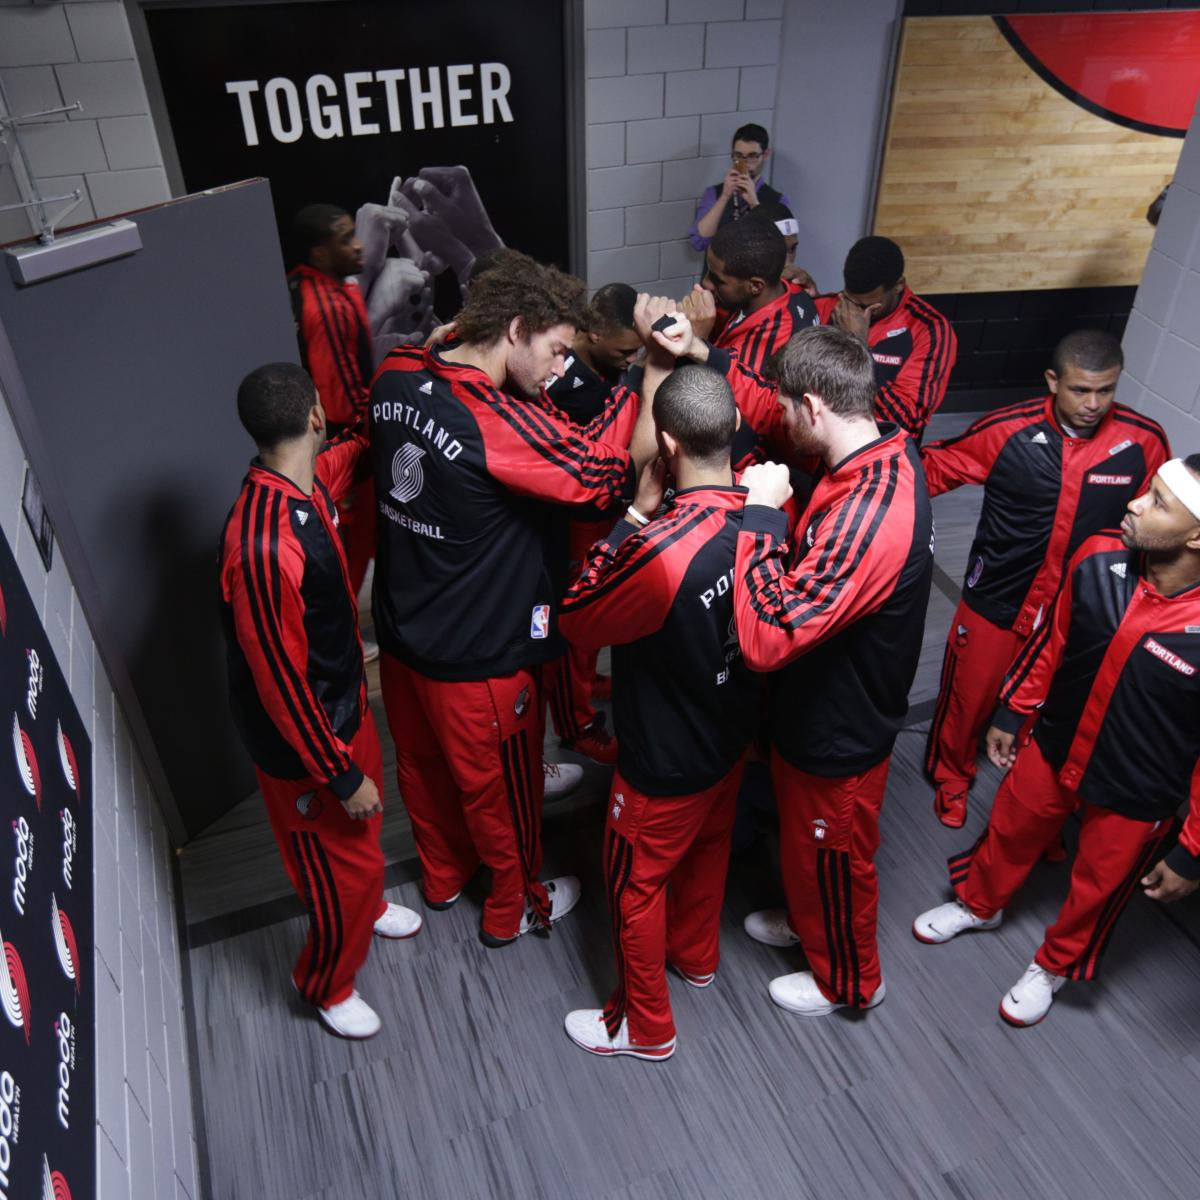 Portland Trail Blazers Coach: Portland Trail Blazers' First Half Player Power Rankings